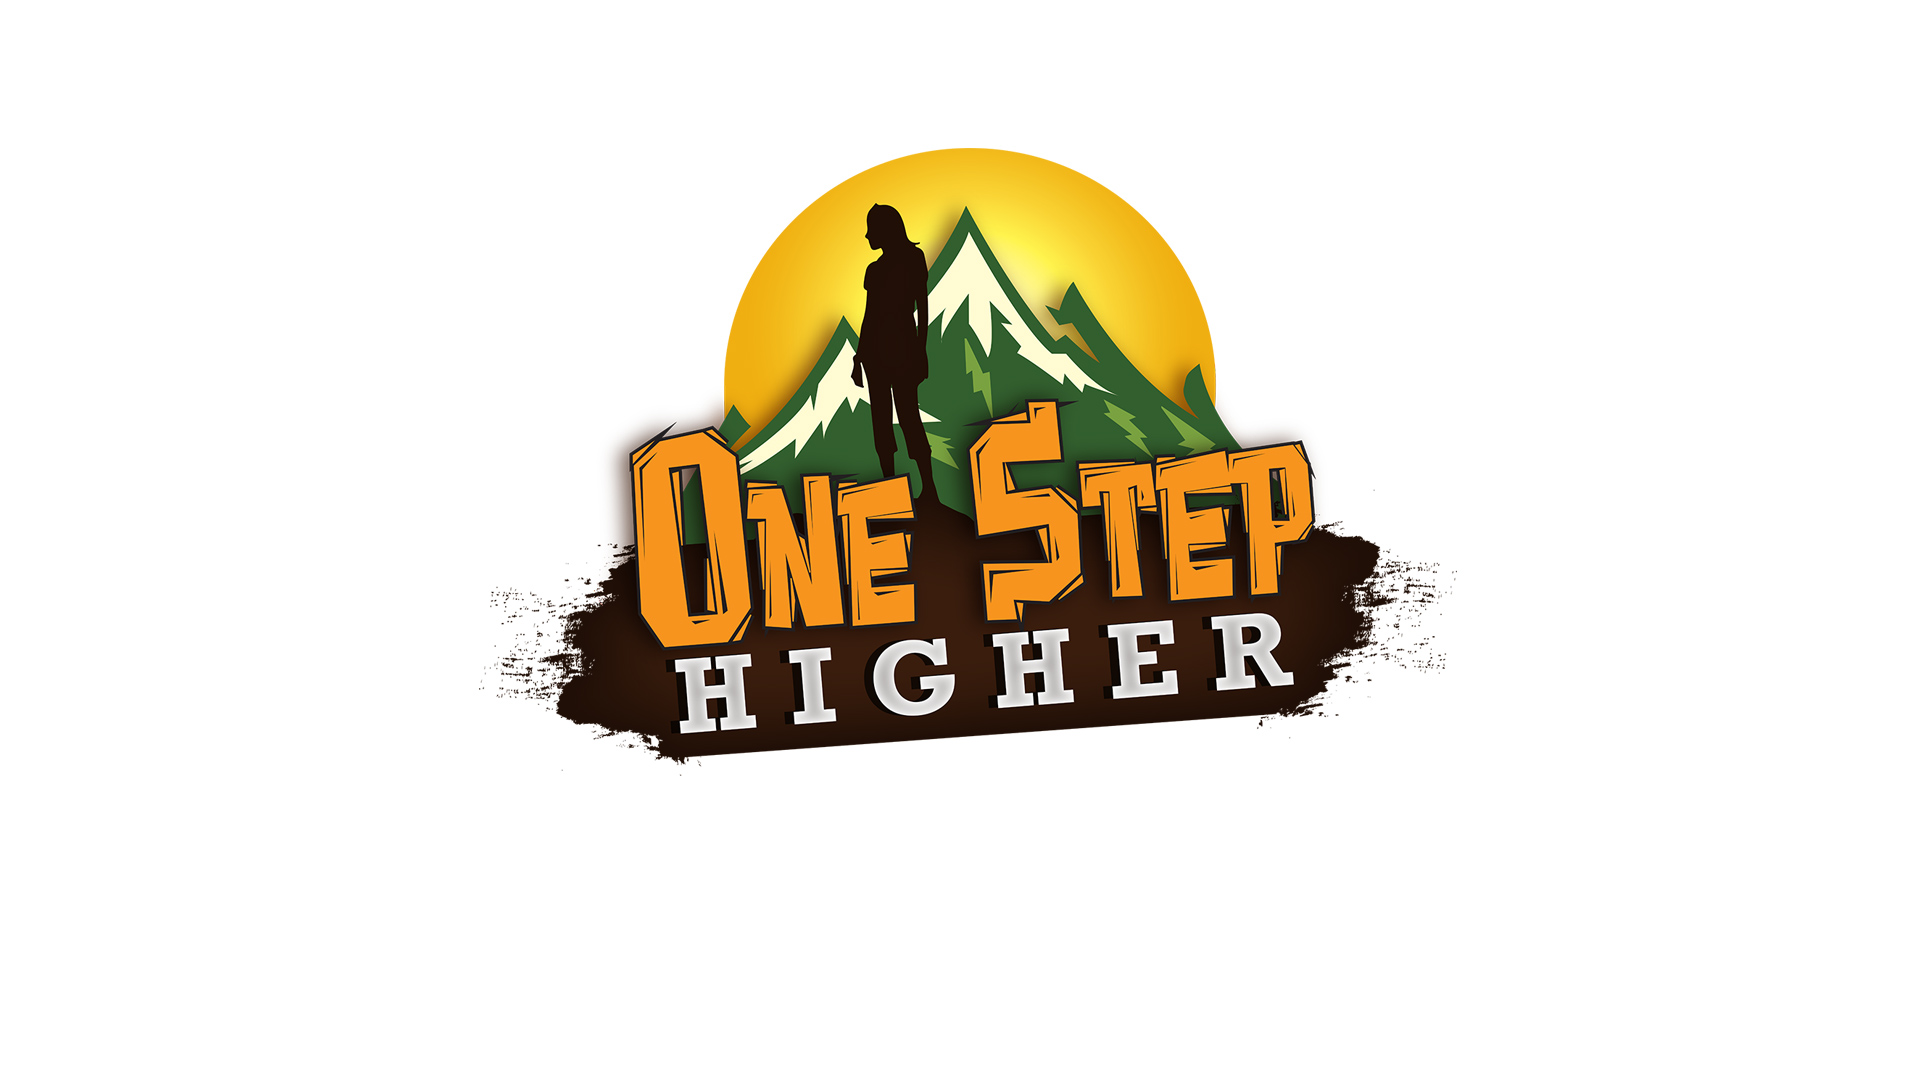 ONE STEP HIGHER